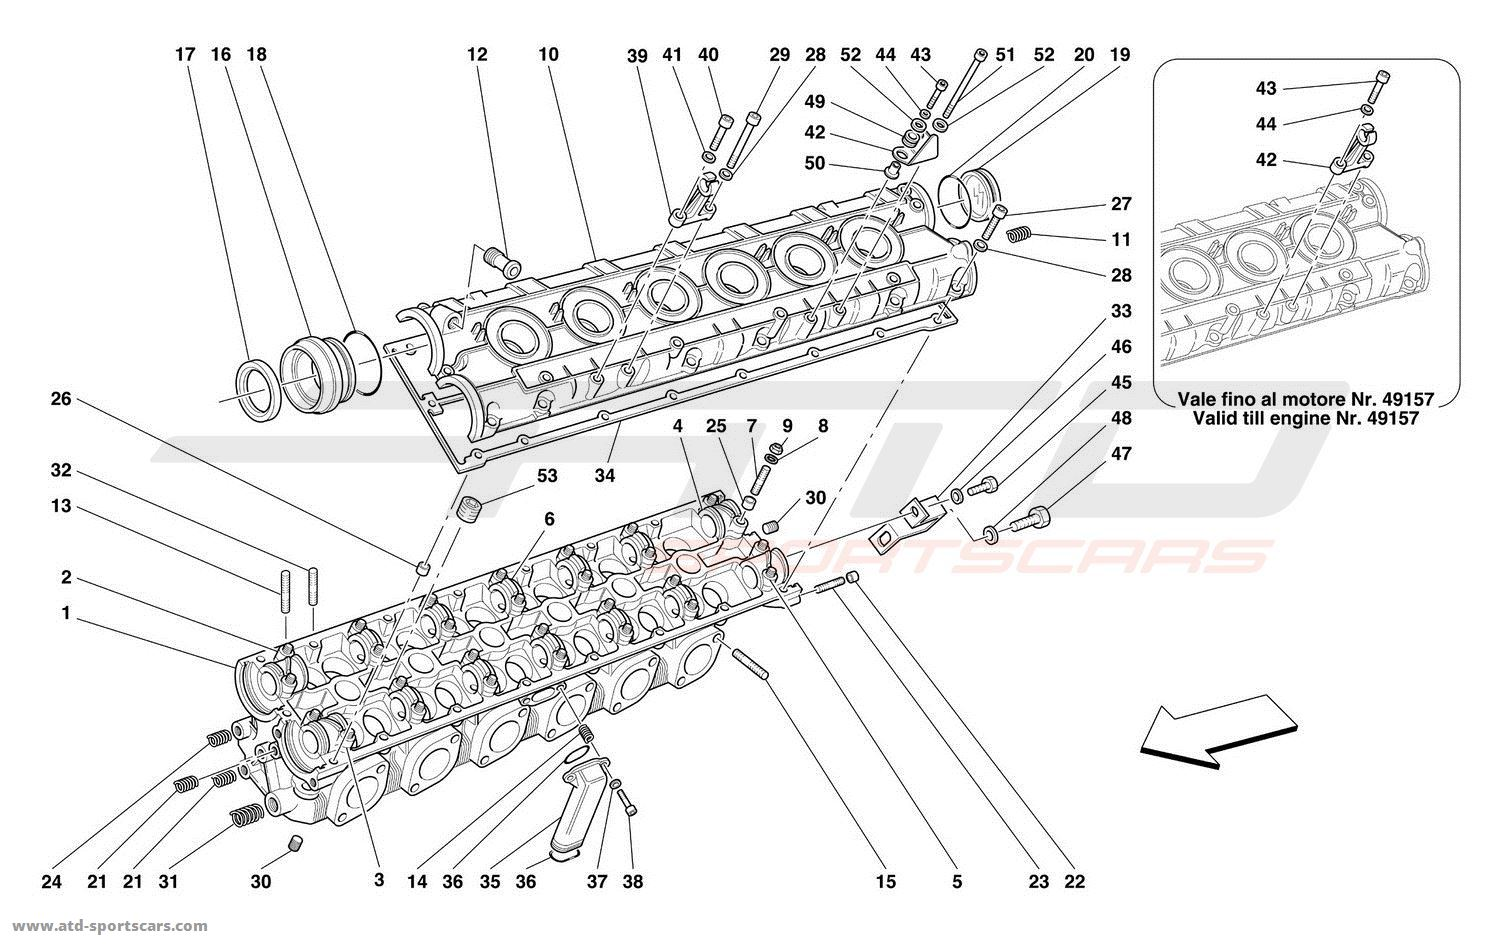 Ferrari 308 Qv Wiring Diagram Electrical 1985 328 Gts Alternator Signals Alfa Romeo Spider